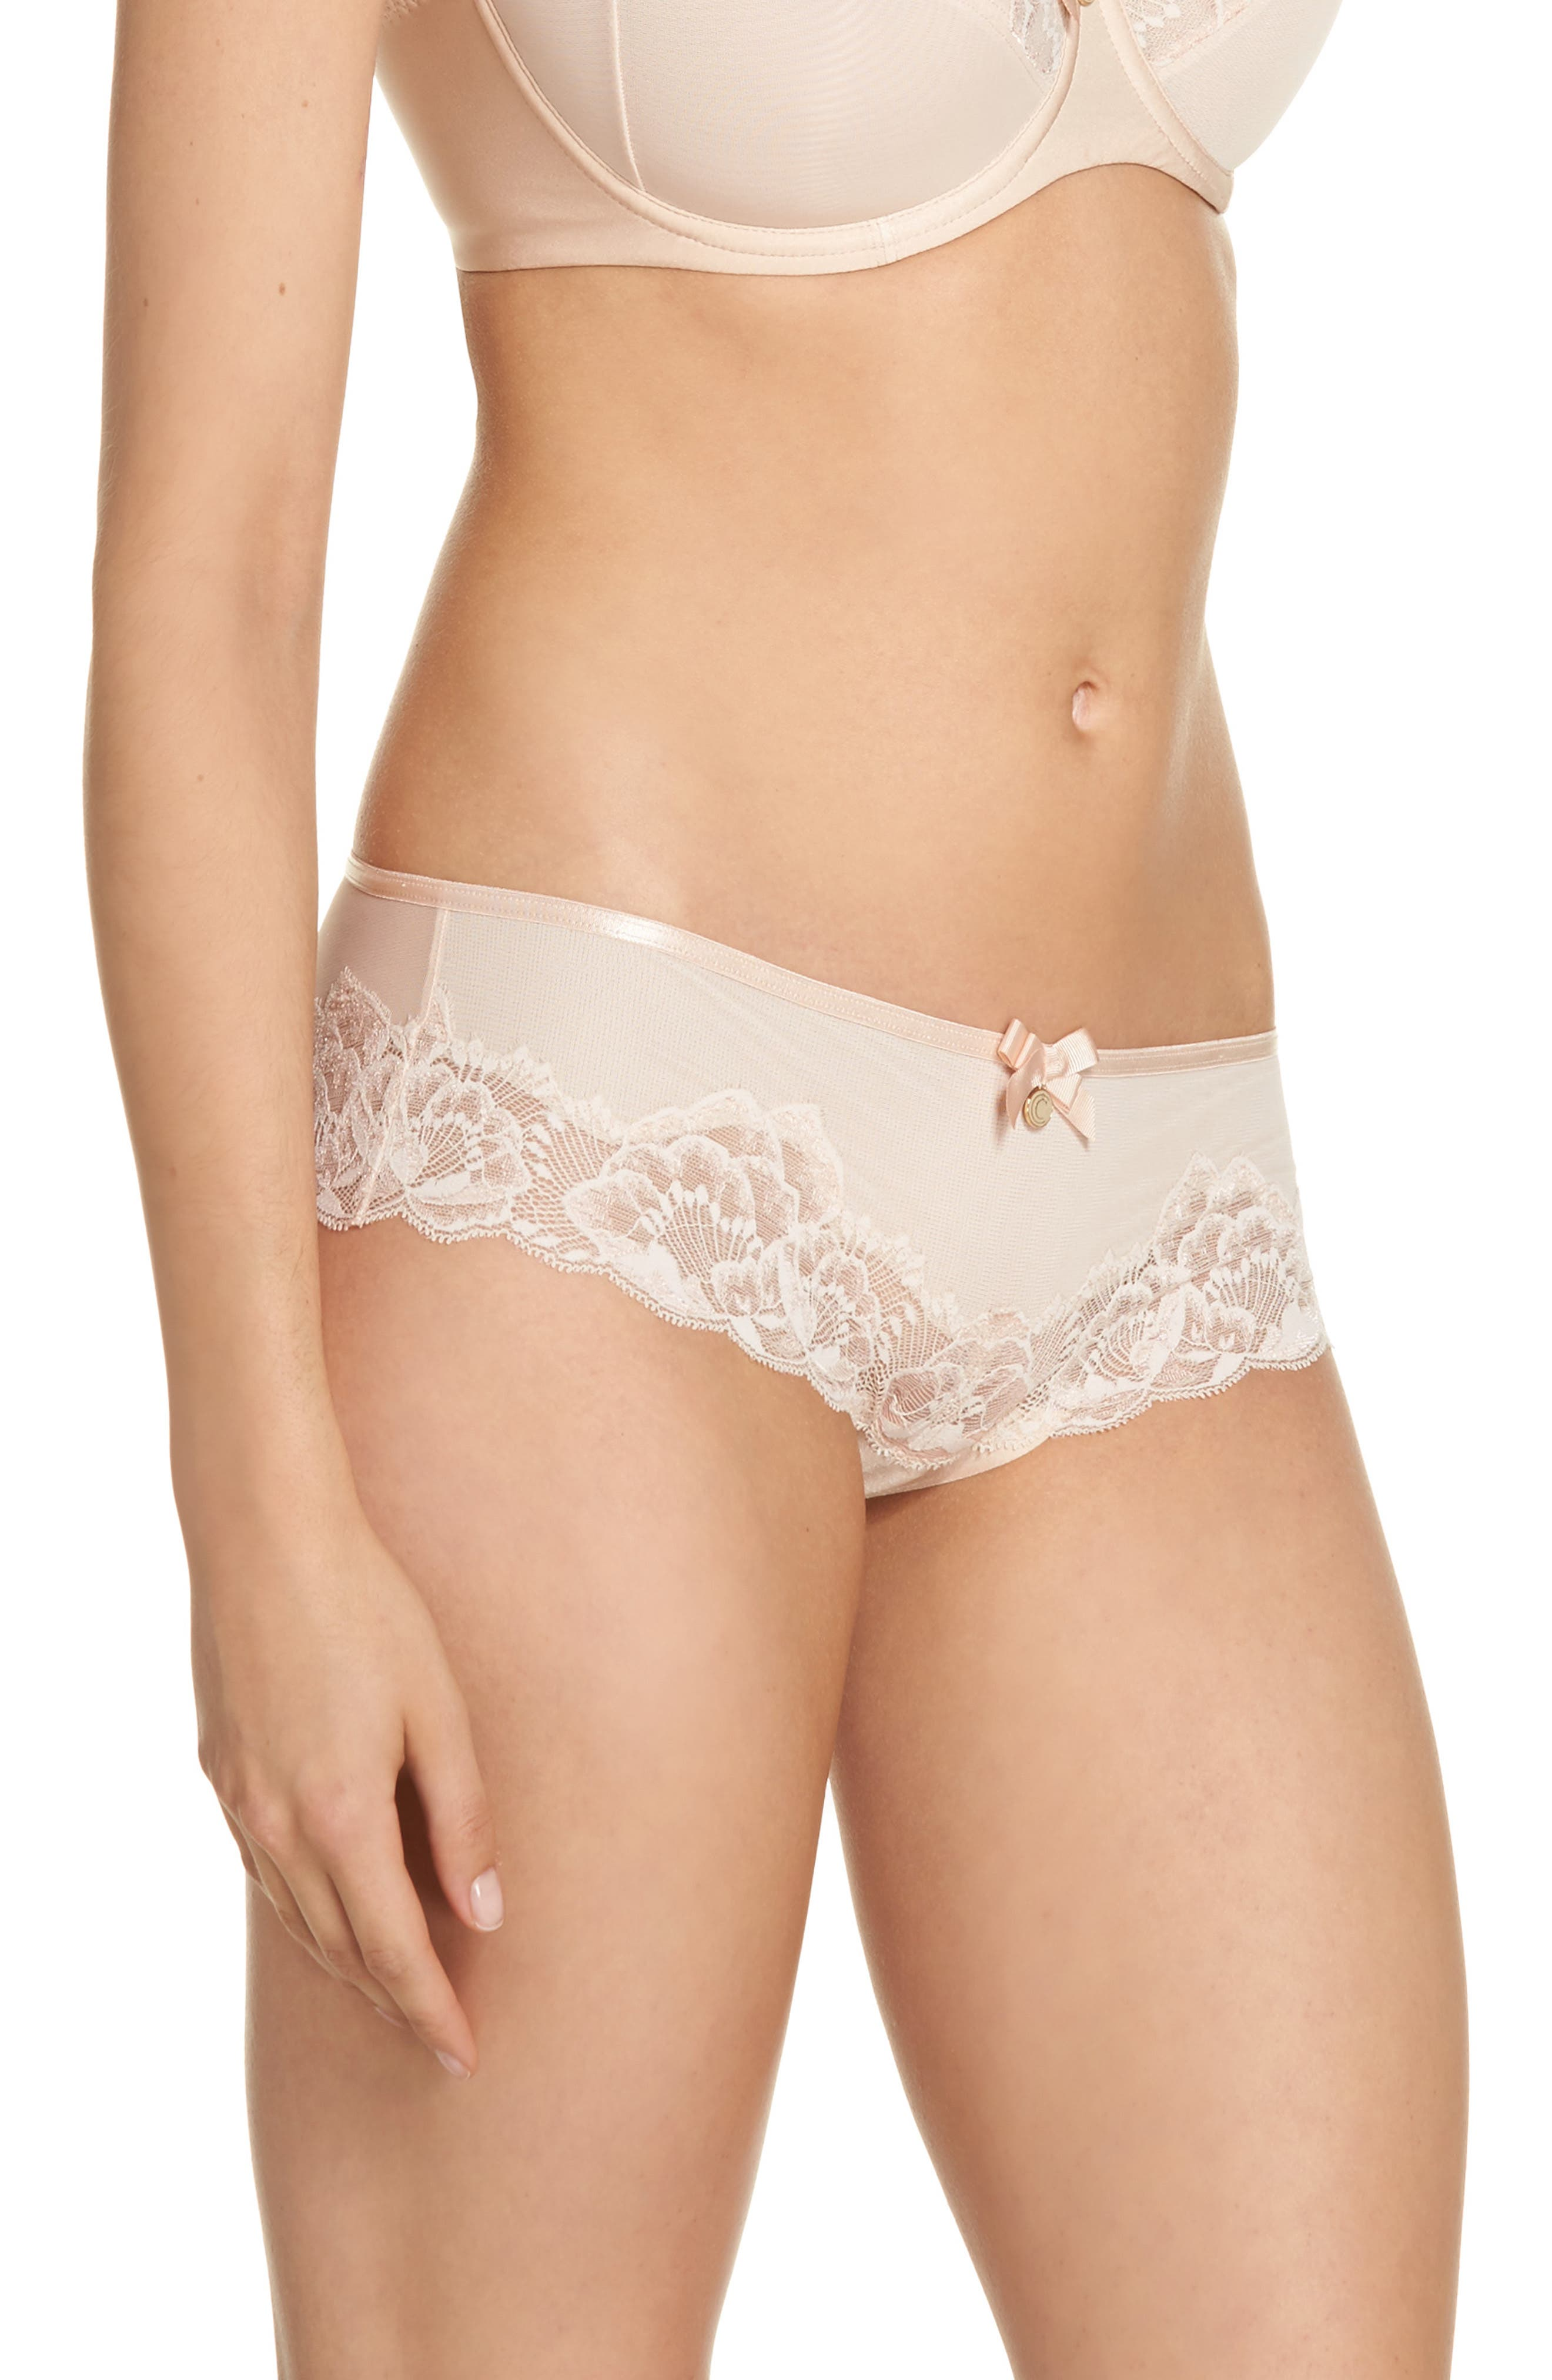 Orangerie Hipster Panties,                             Alternate thumbnail 3, color,                             Skin Rose